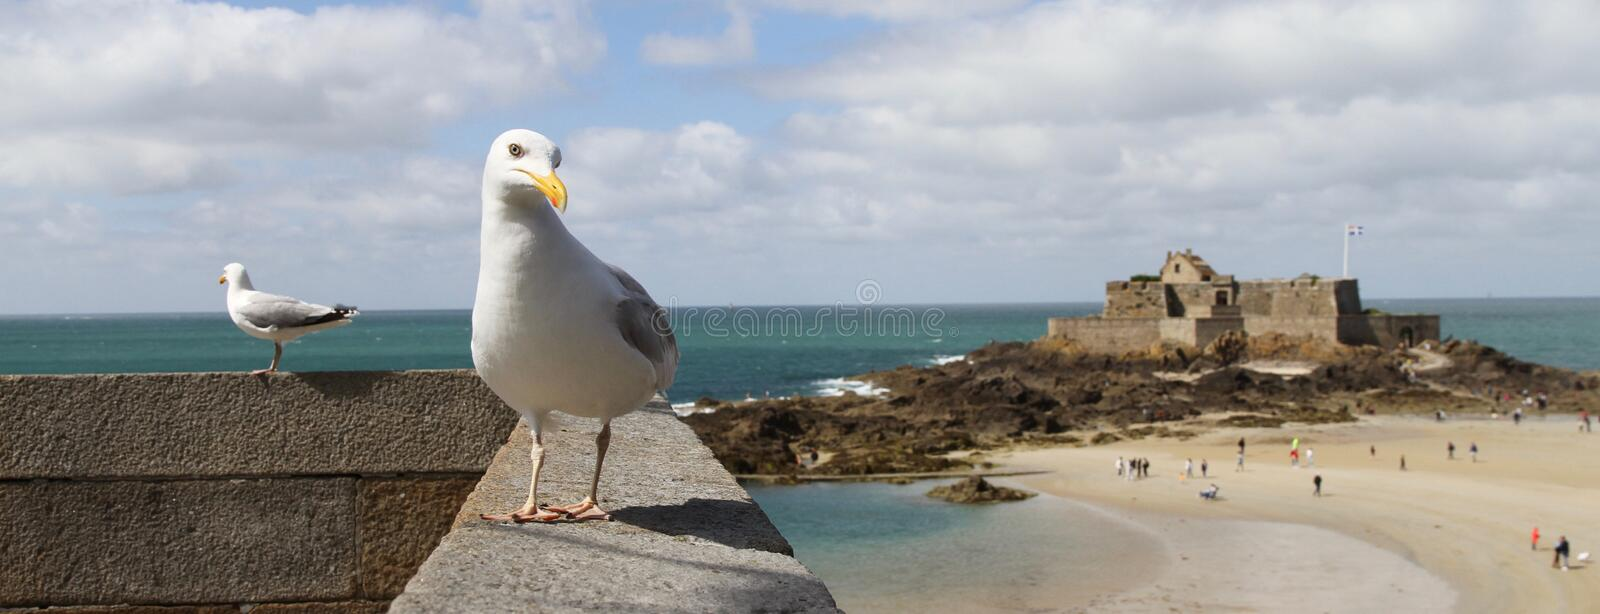 Seagulls on a wall with island and fort of Petit Be in the background in St Malo, France. Seagulls on a wall with island of Petit Be in the background, A stock image